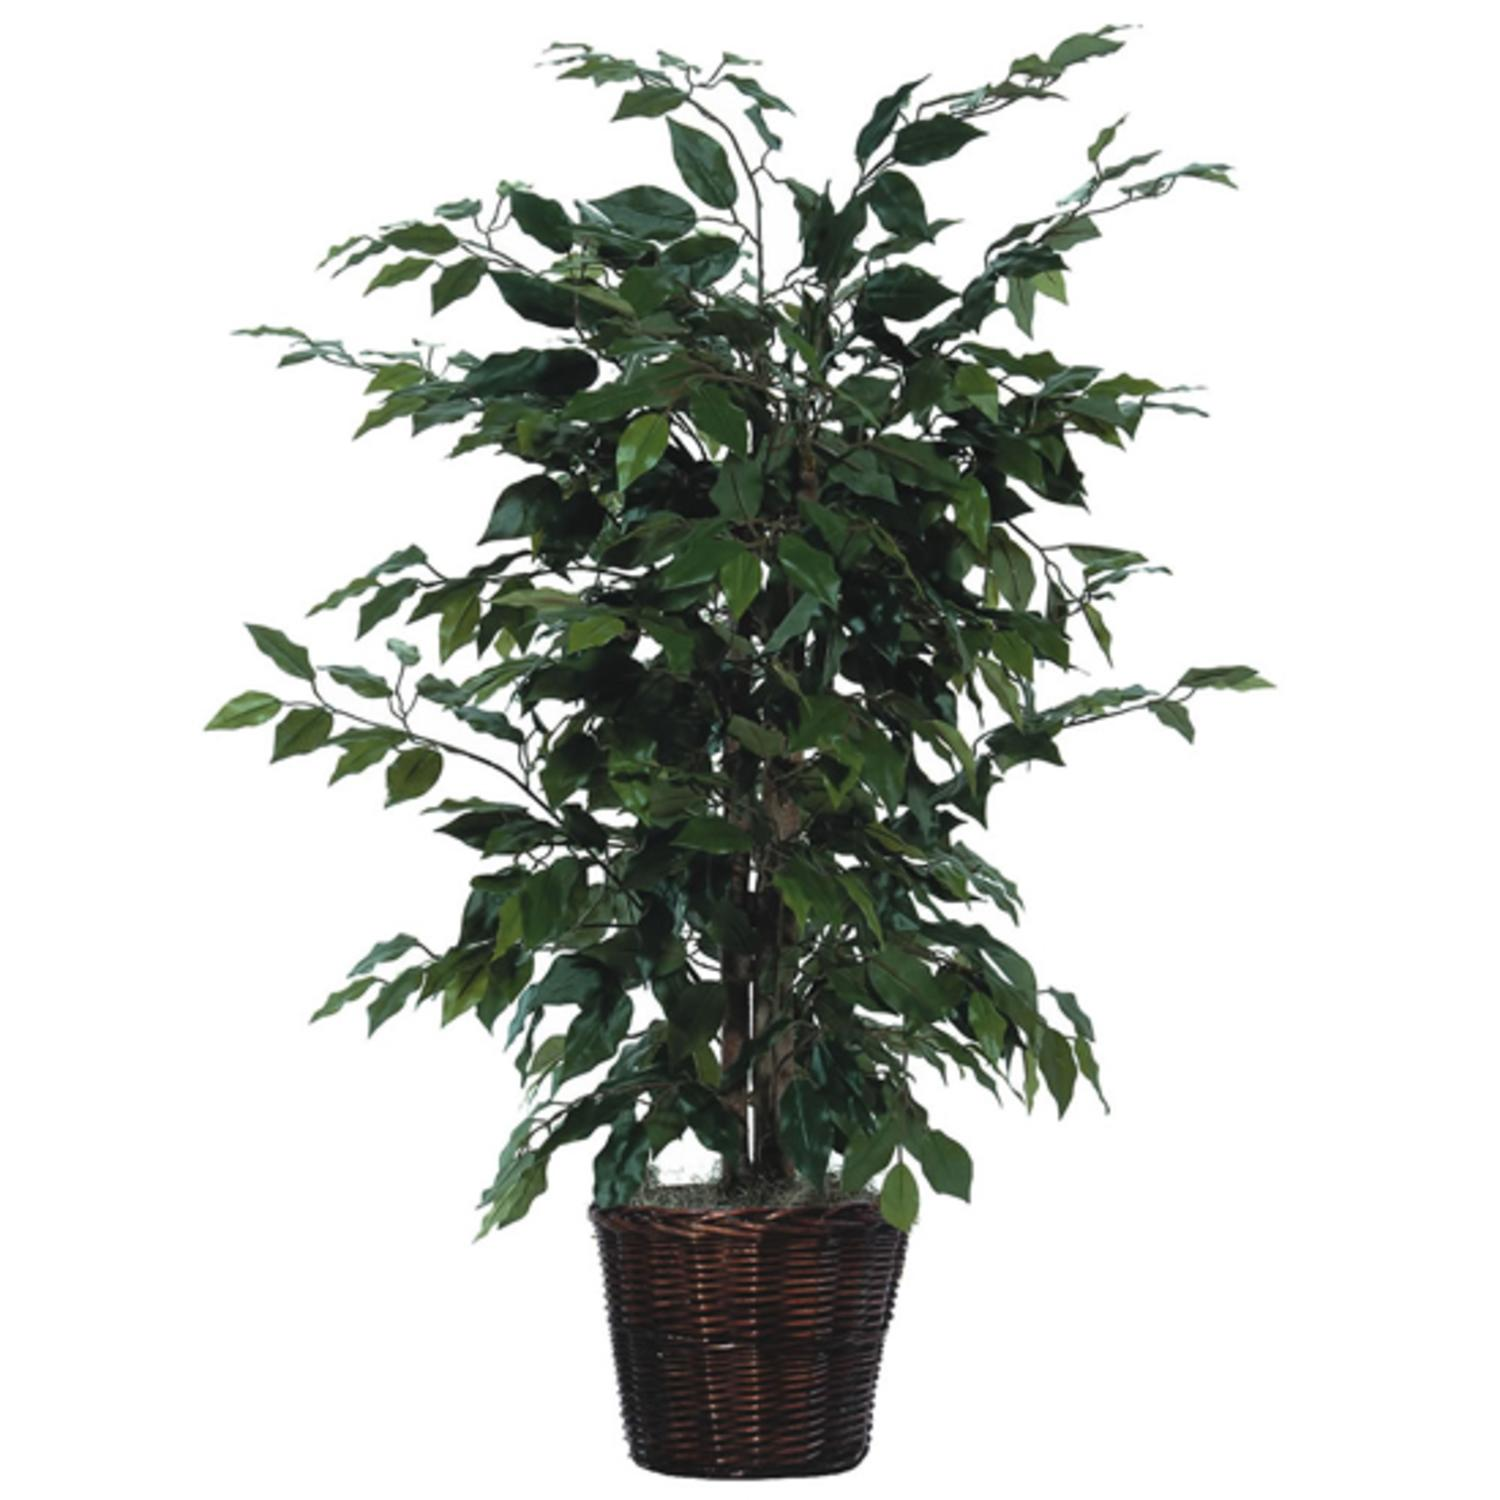 4' Potted Artificial Natural Ficus Bush